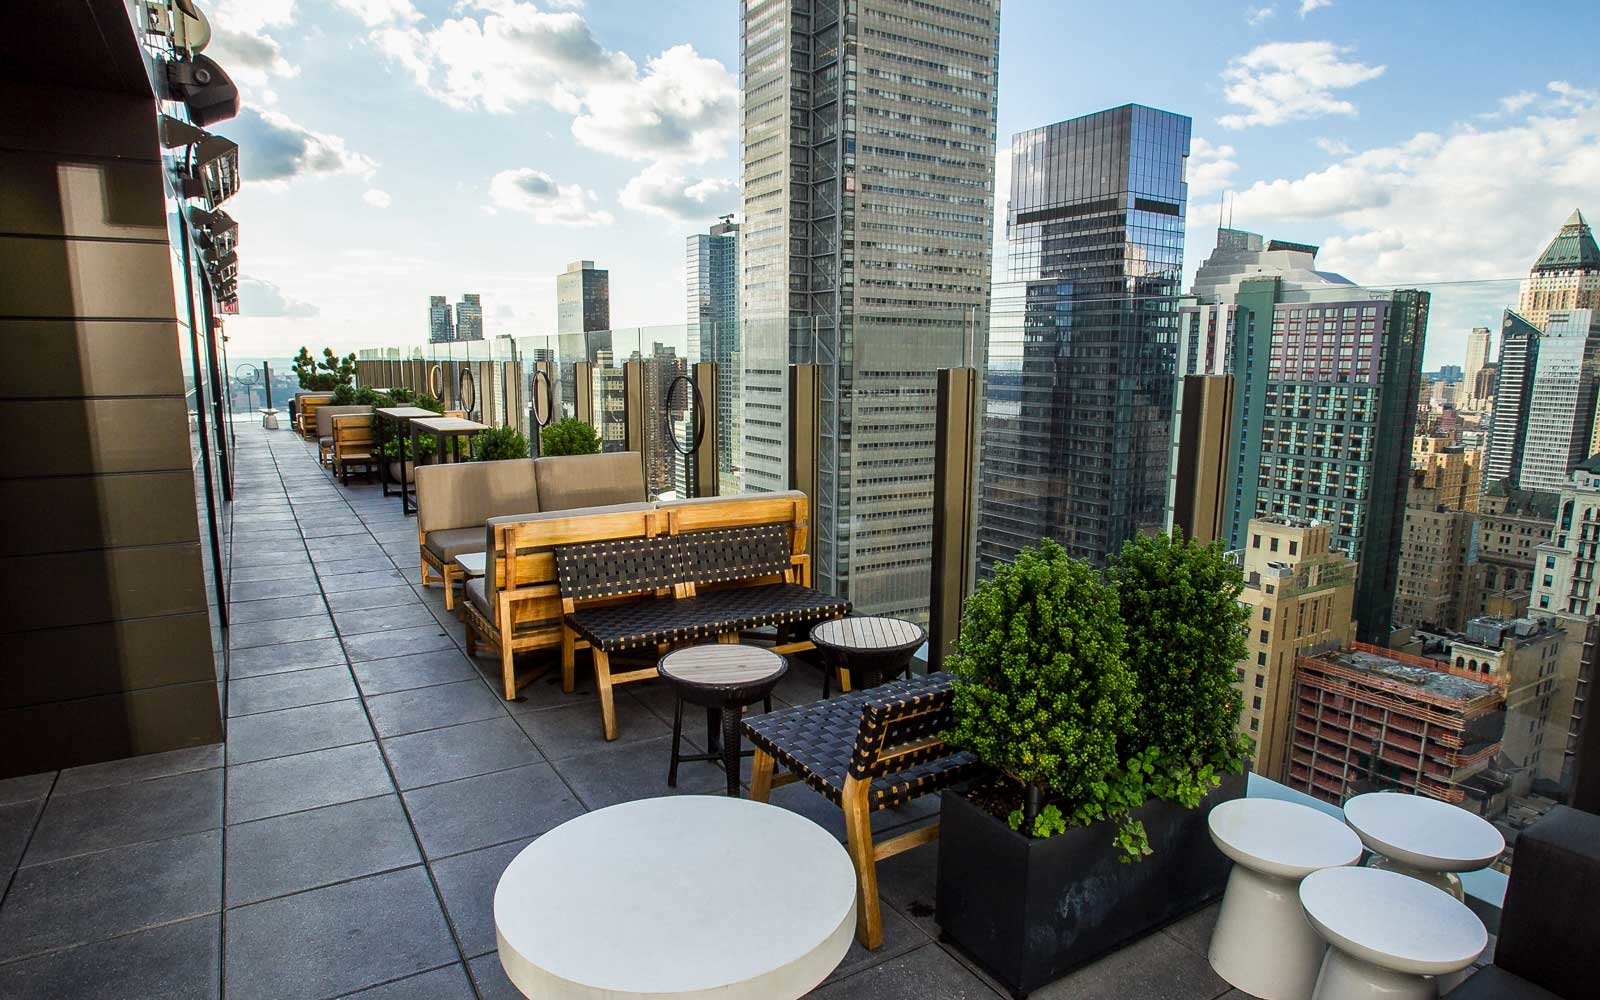 Skylark Rooftop New York